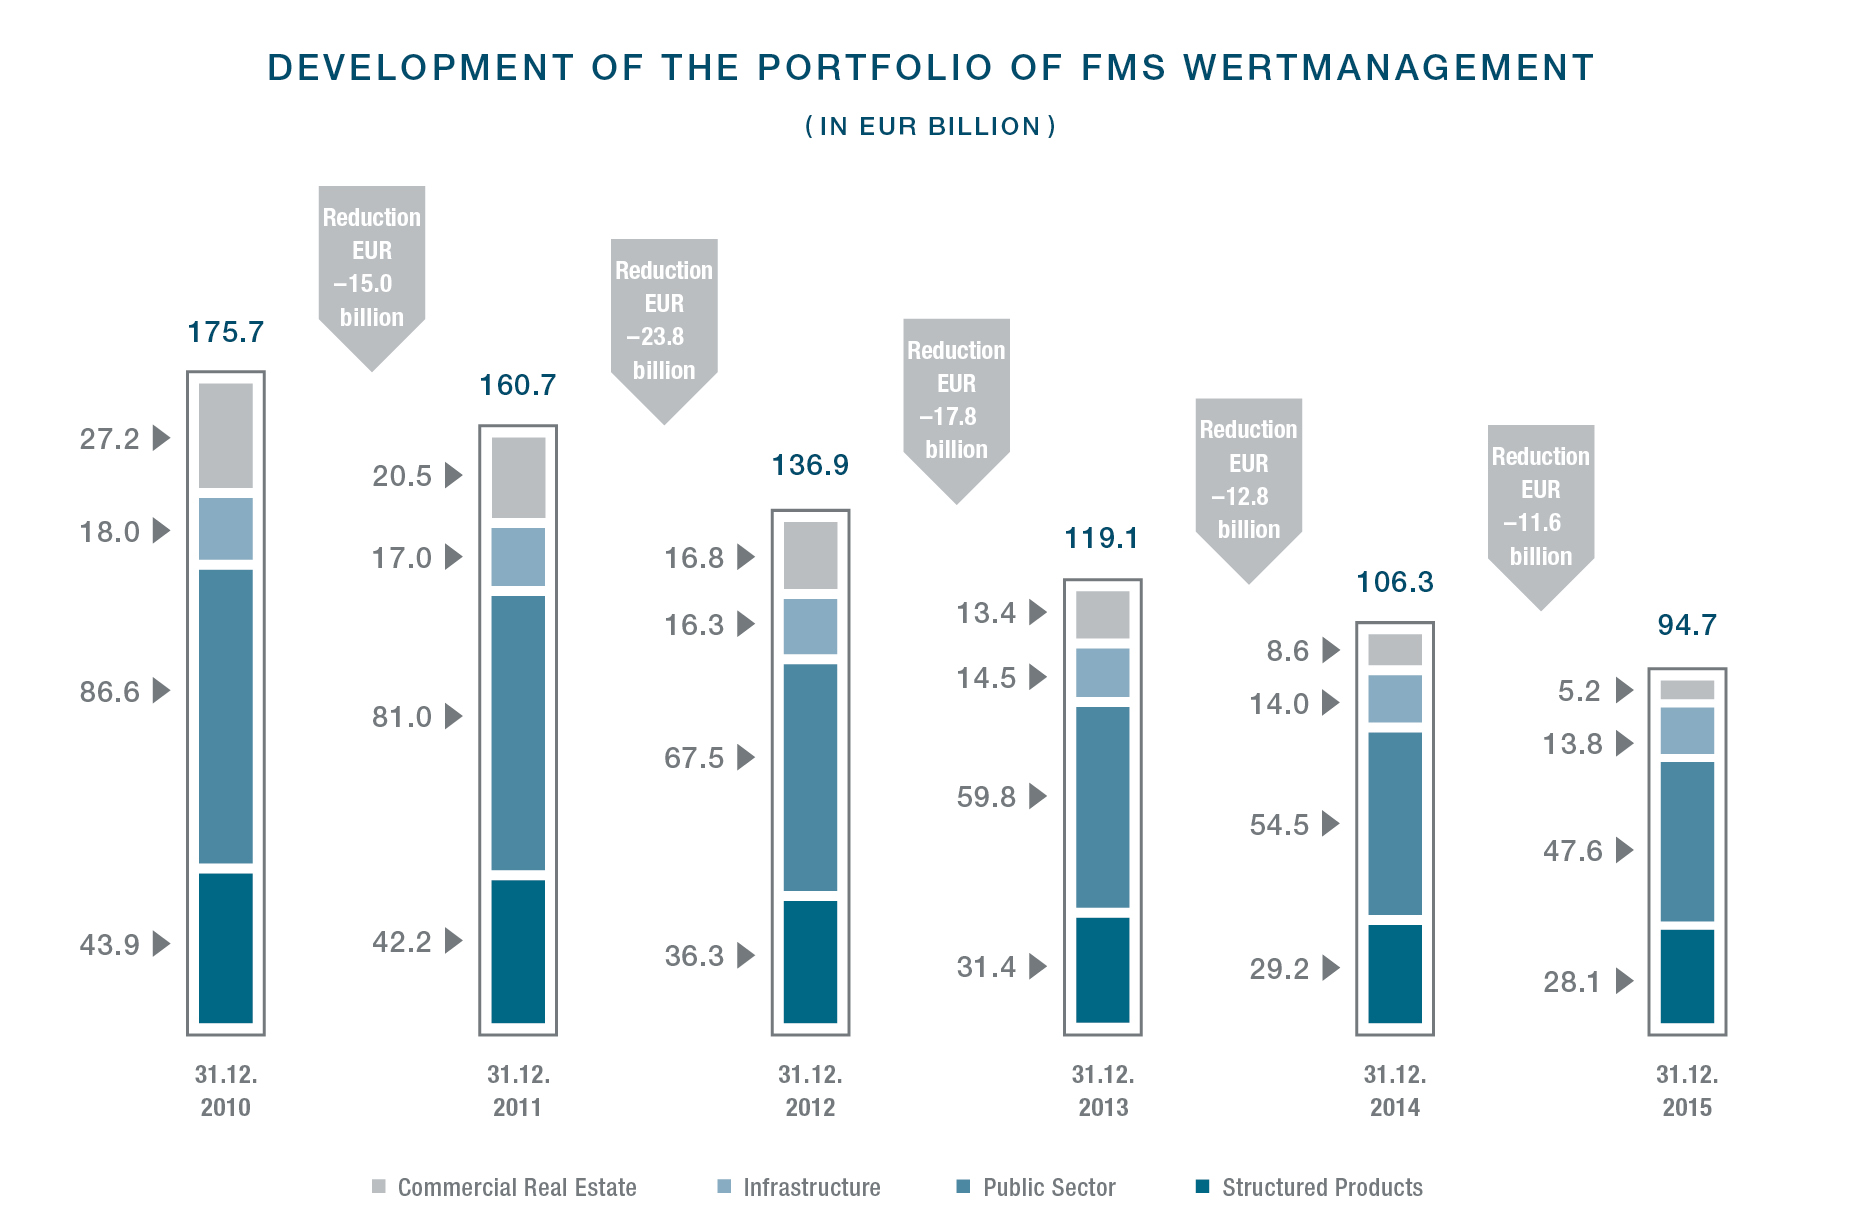 20160421 FMS WM 2015 Development of the portfolio of FMS Wertmanagement